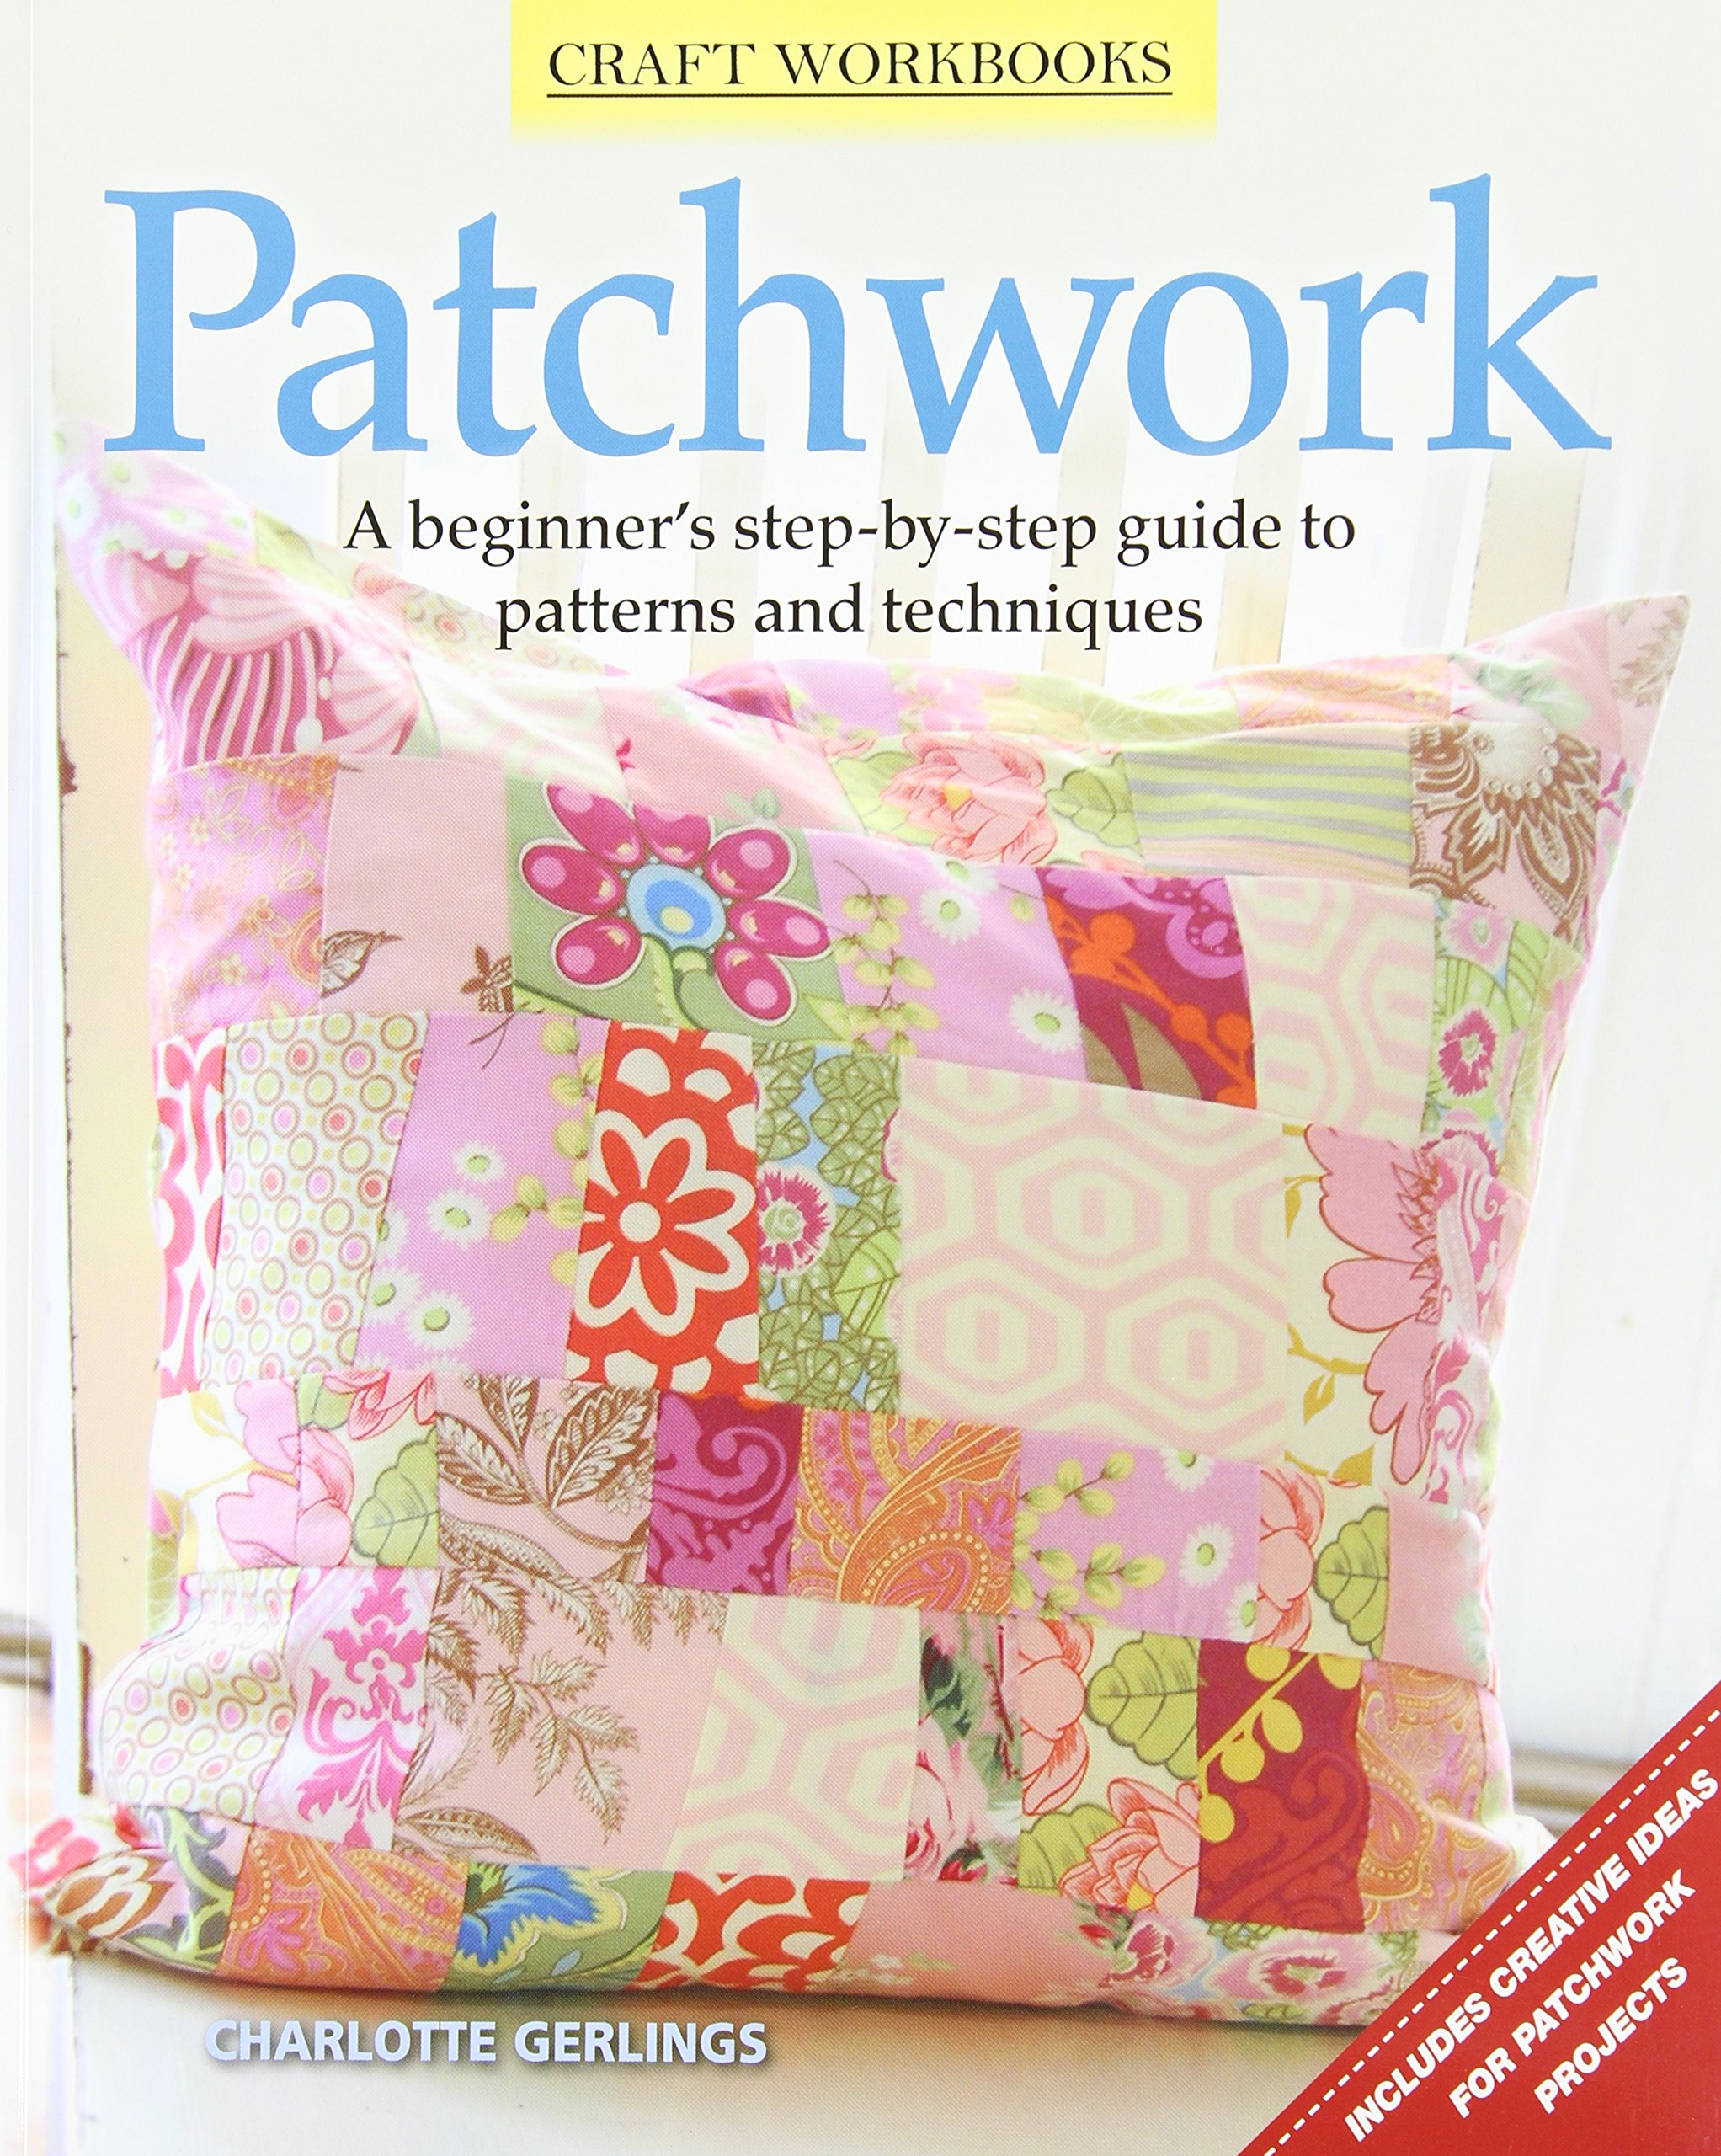 Read Online Patchwork: A beginner's step-by-step guide to patterns and techniques (Craft Workbooks) pdf epub